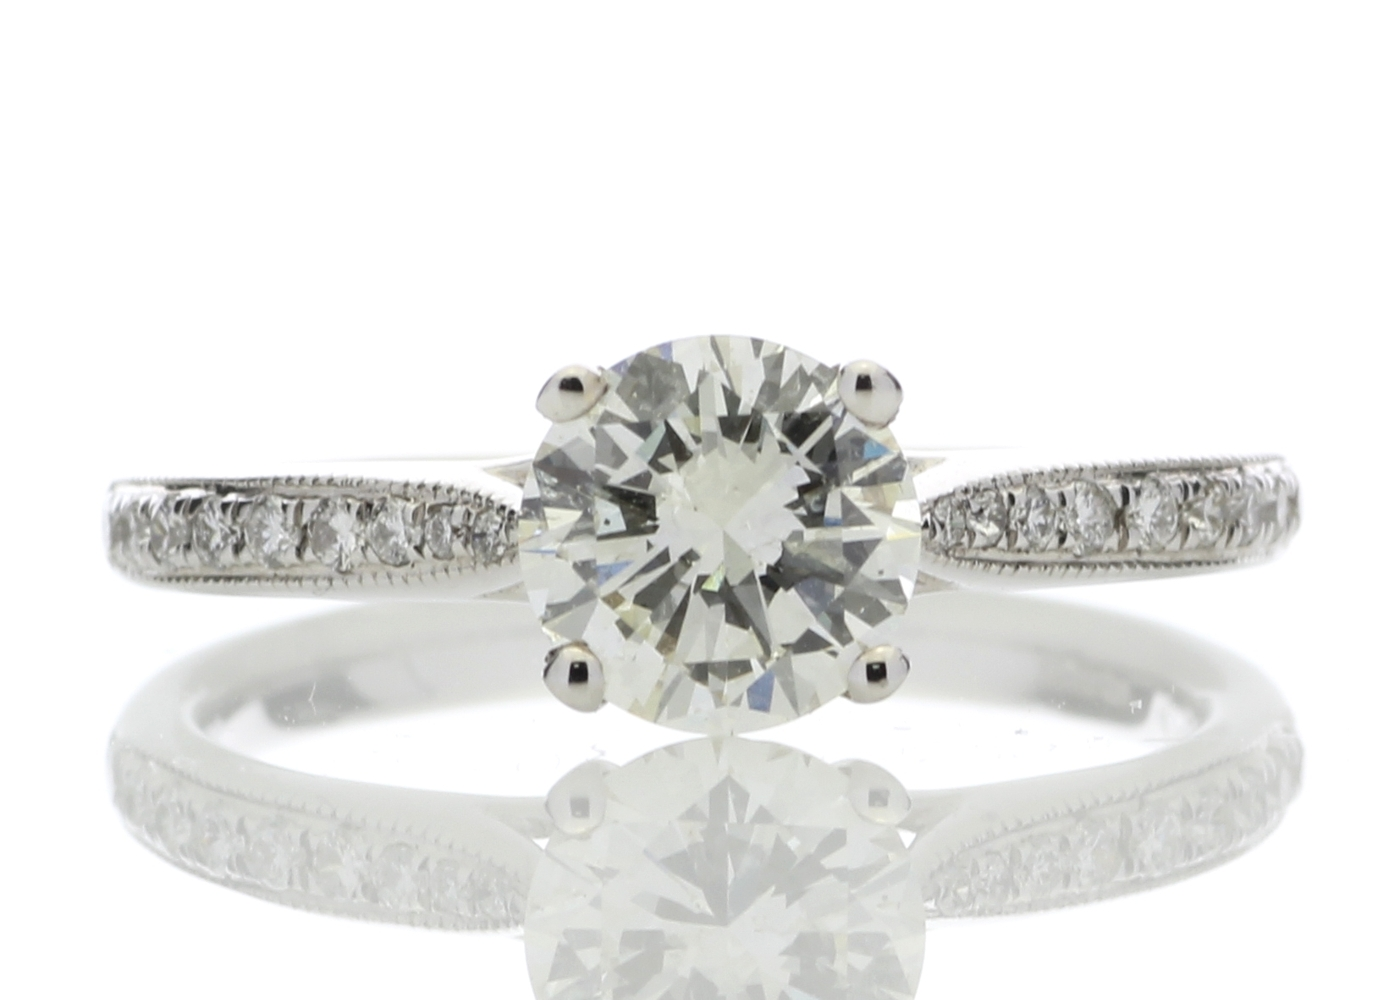 18ct White Gold Diamond Ring With Stone Set Shoulders 1.15 Carats